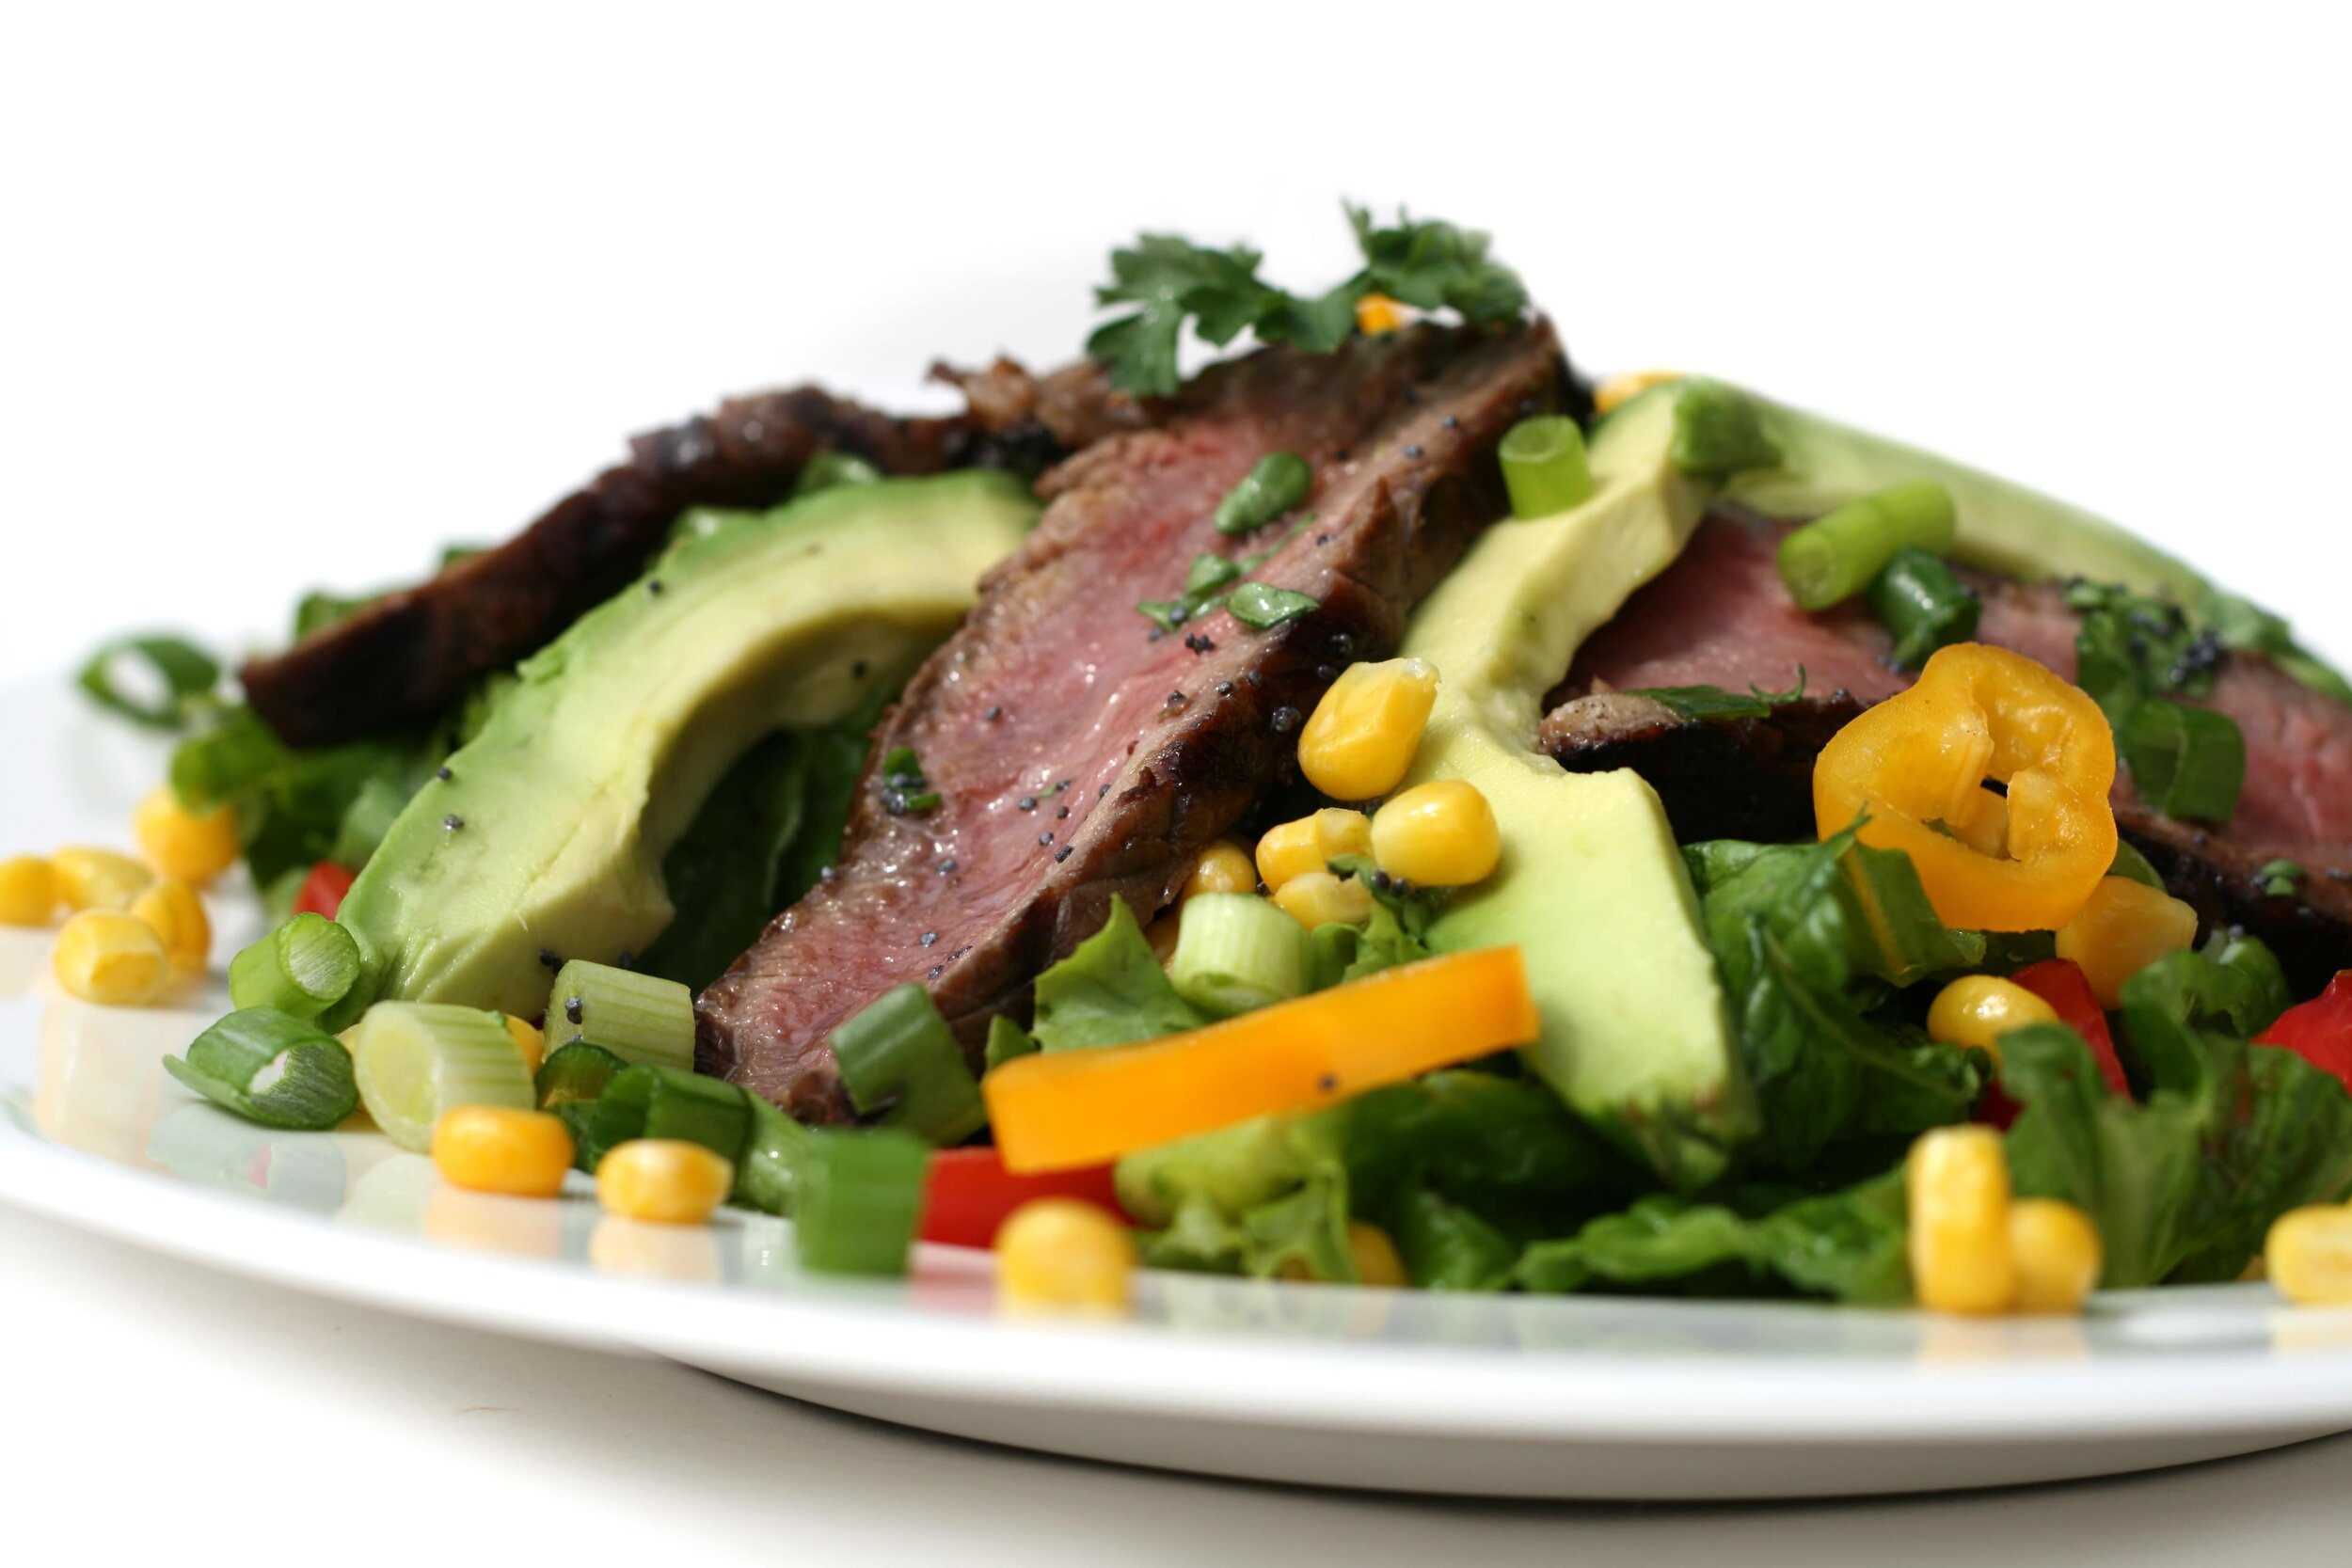 The Atkins diet plan for quick drastic weight loss.